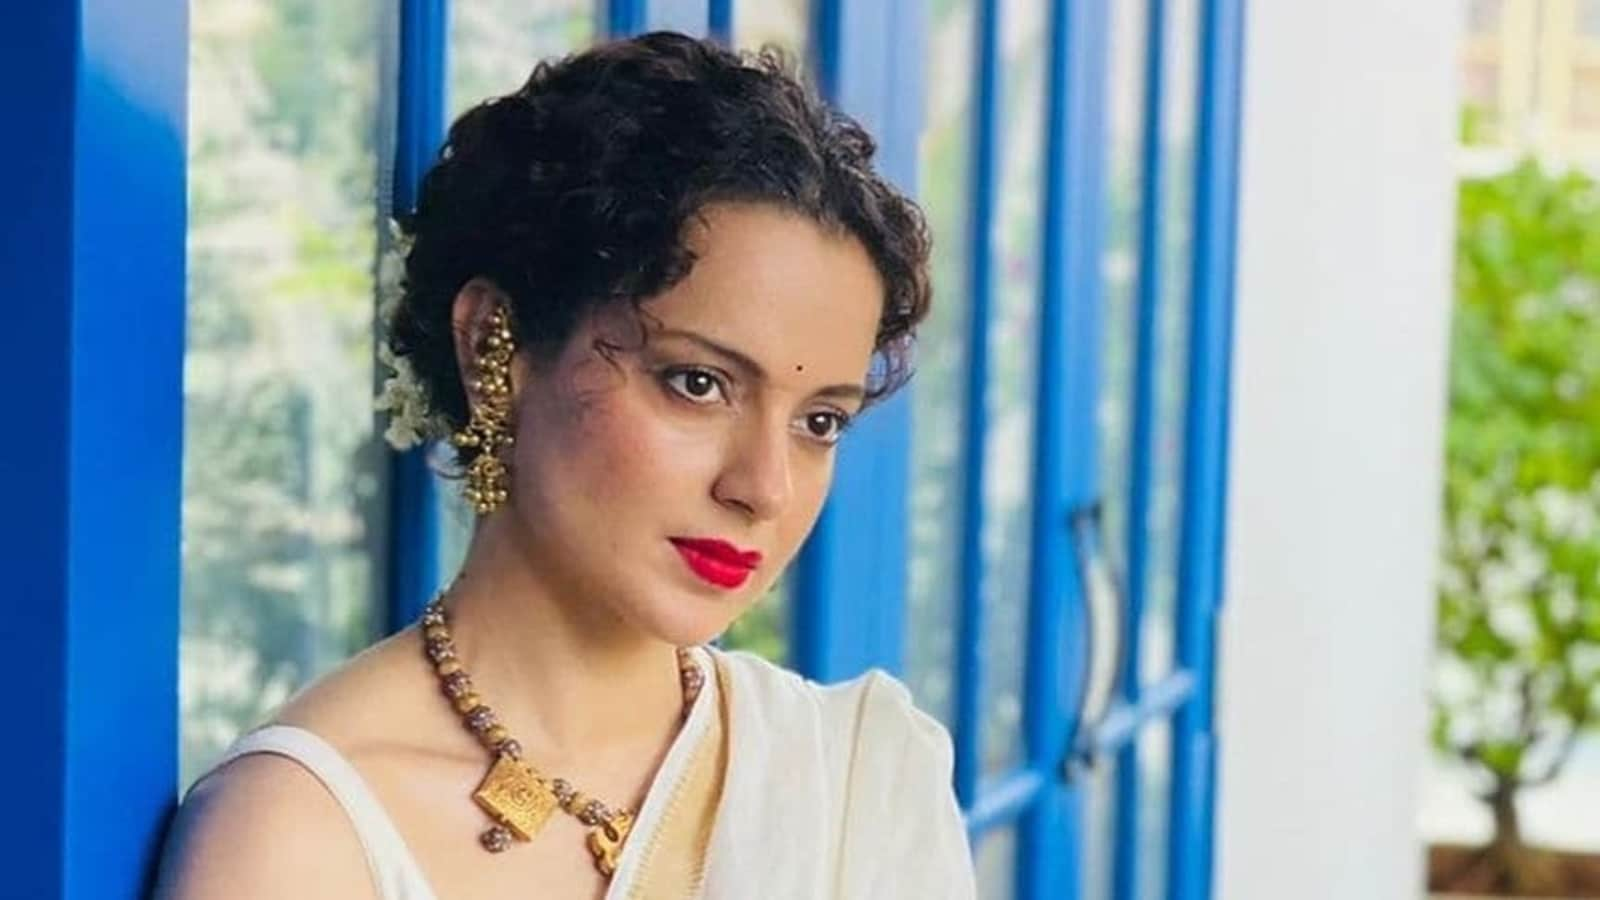 Kangana Ranaut calls Covid-19 'a wake-up call' after dismissing it as 'small-time flu which got too much press' | Hindustan Times